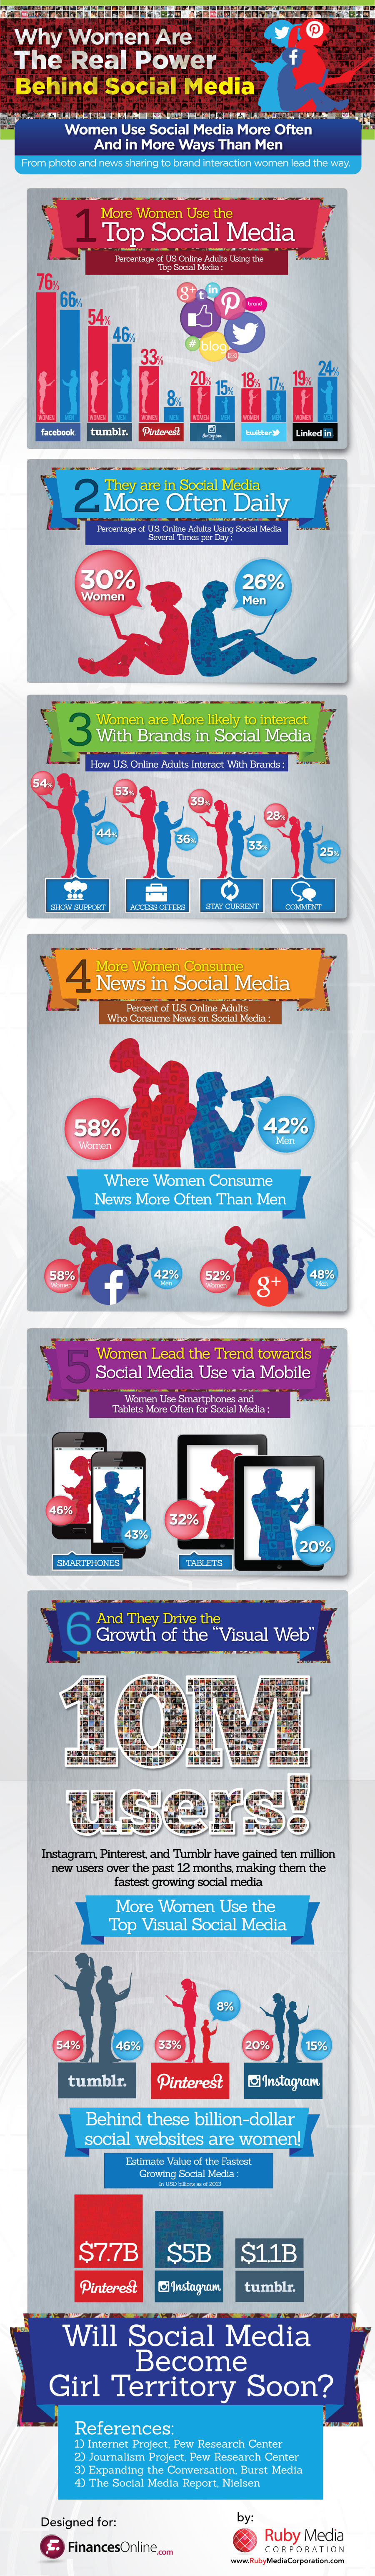 Most Popular Social Media Sites Review: Why Women Are The Real Power Behind The Huge Success Of Facebook, Twitter, Pinterest and Tumblr - infographic